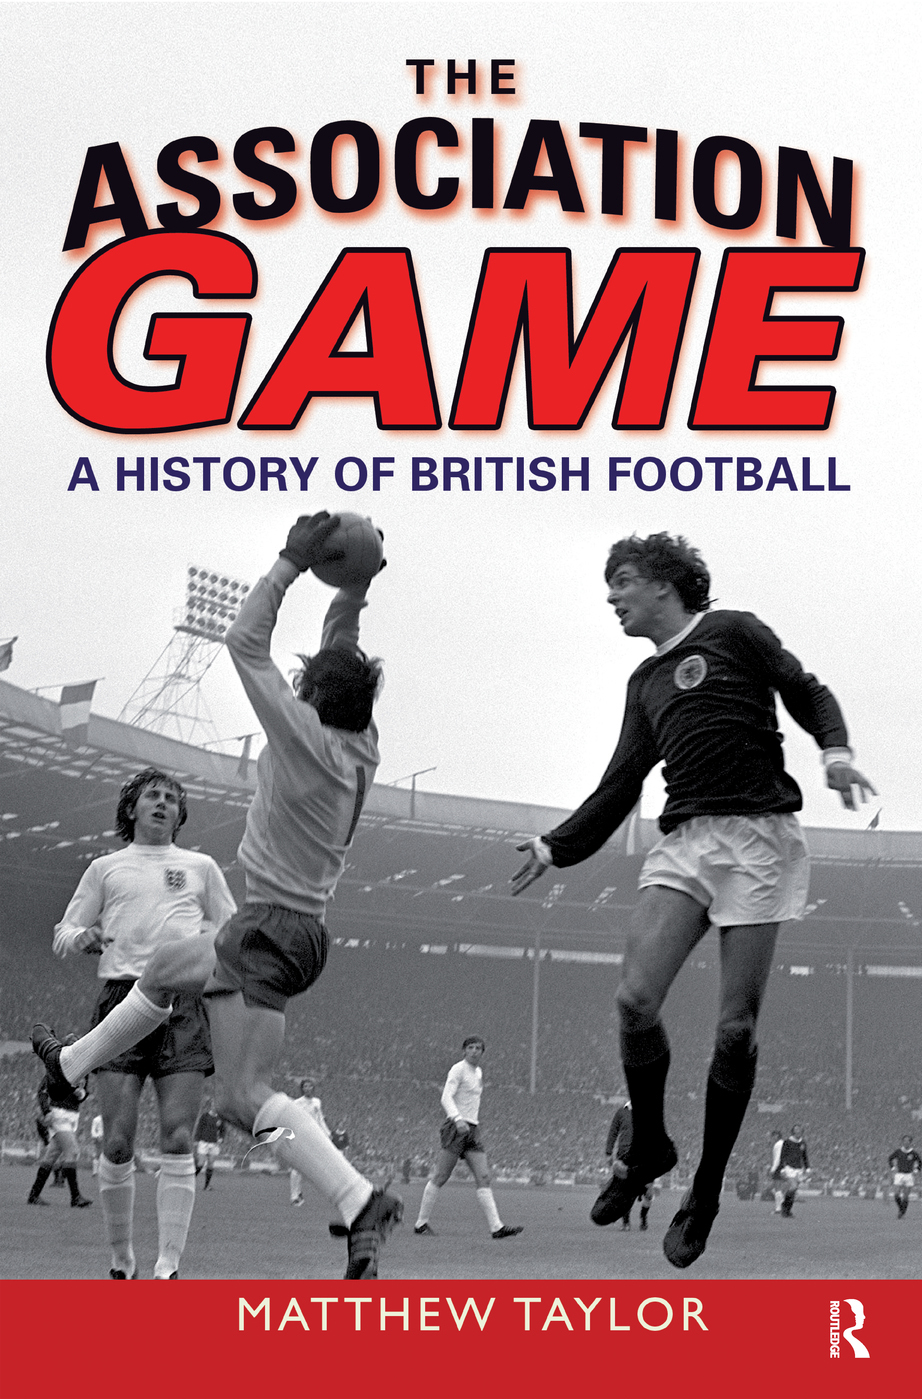 The Association Game A History of British Football